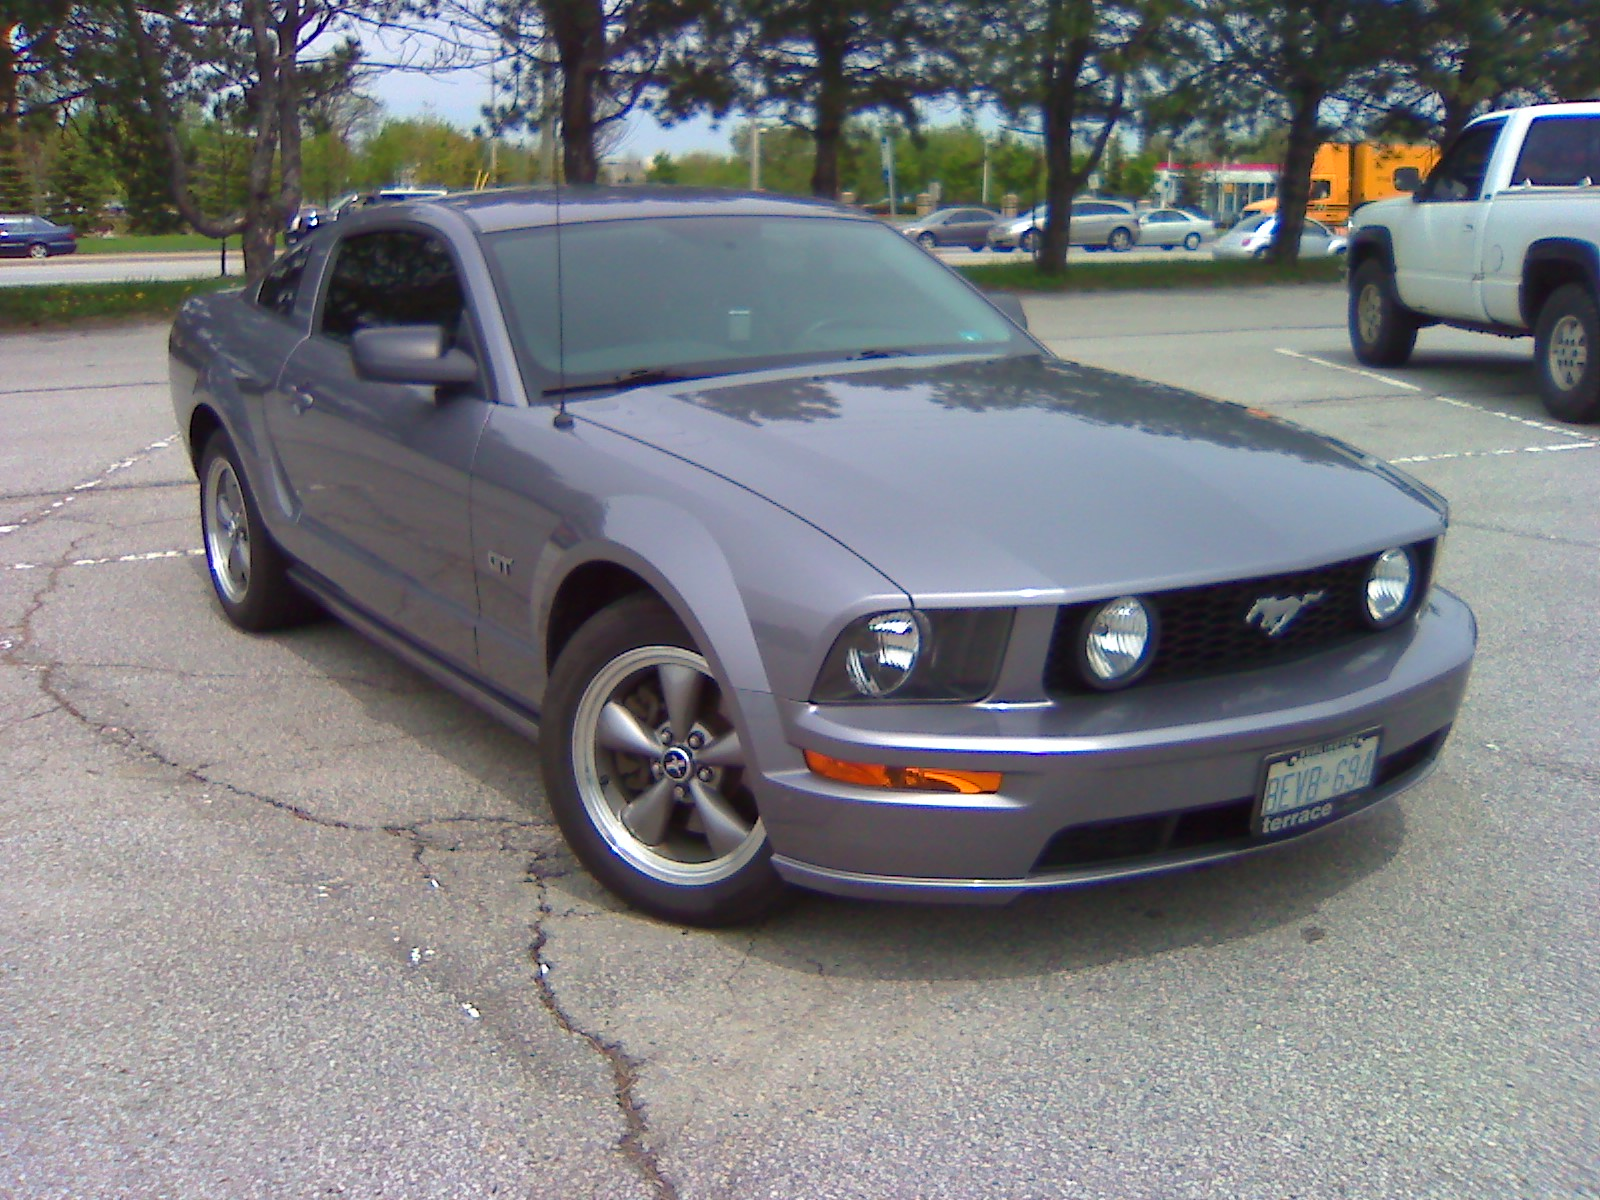 2006 ford mustang gt premium pic 28307 2006 ford mustang gt premium specs car autos gallery 2006 Mustang Radio Fuse Location at creativeand.co